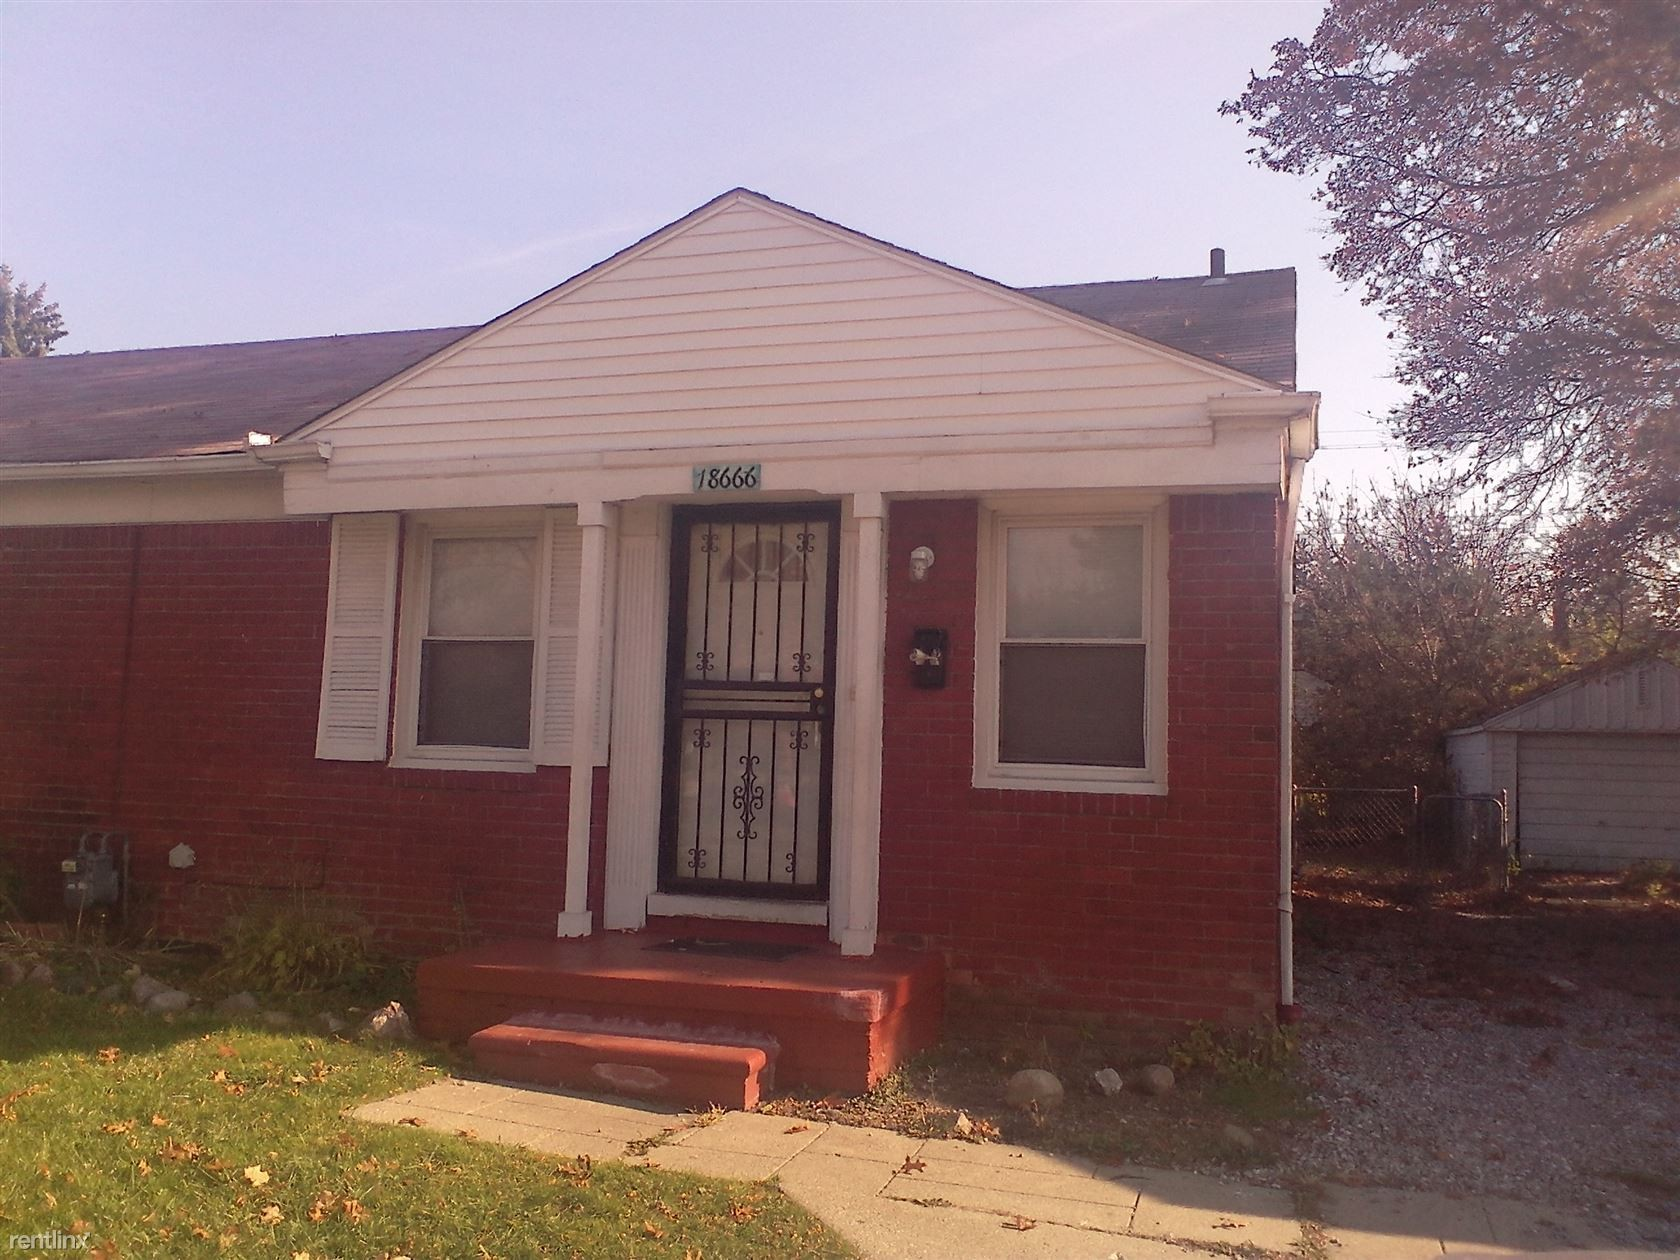 18666 18666 Kelly Rd Nice 2 Bedroom Brick Duplex Is Rady For Rent Detroit Mi 48224 2 Bedroom